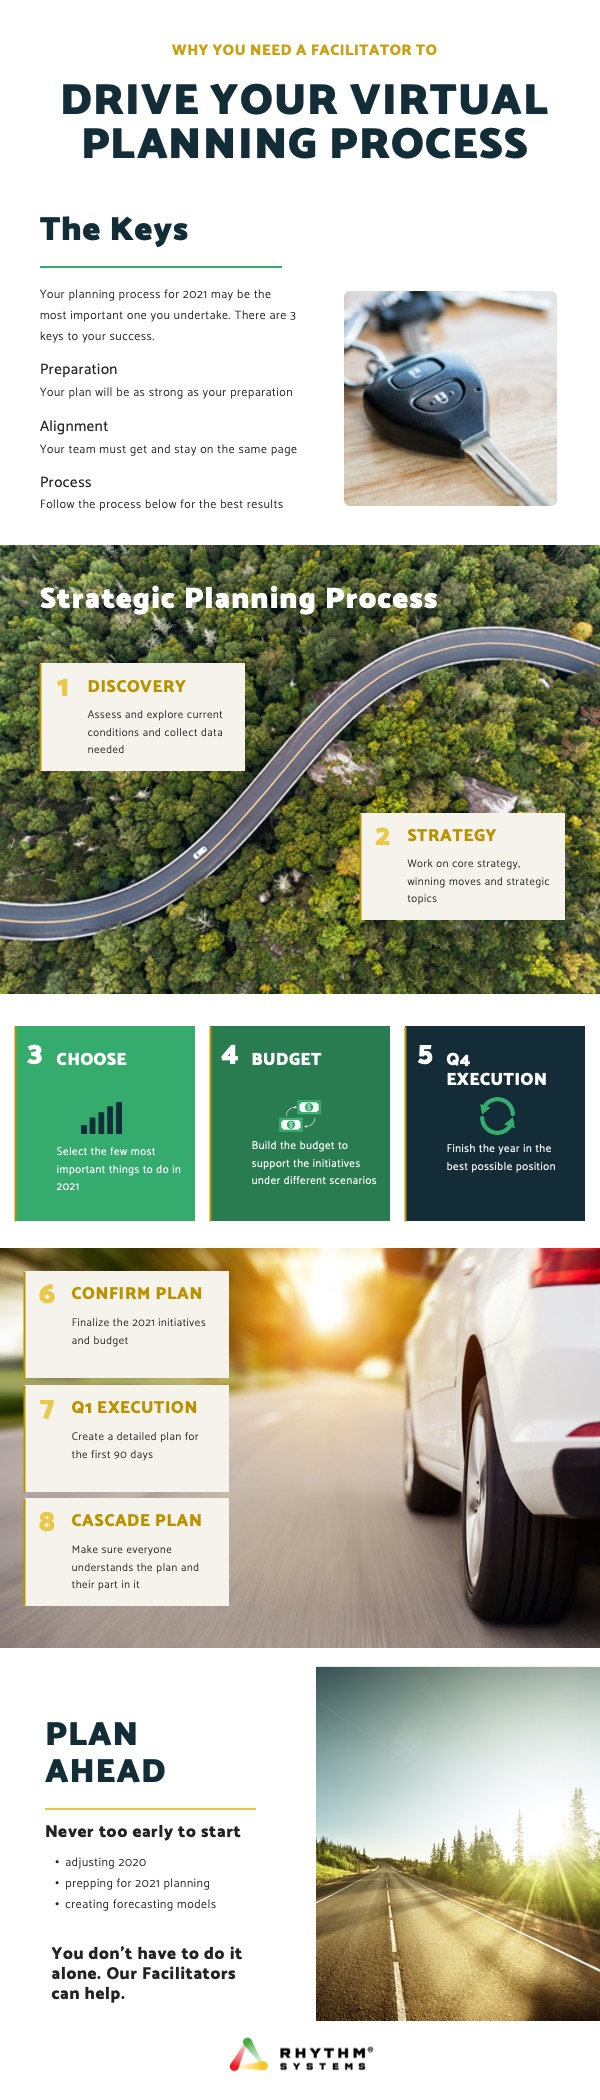 Virtual Planning Process Infographic